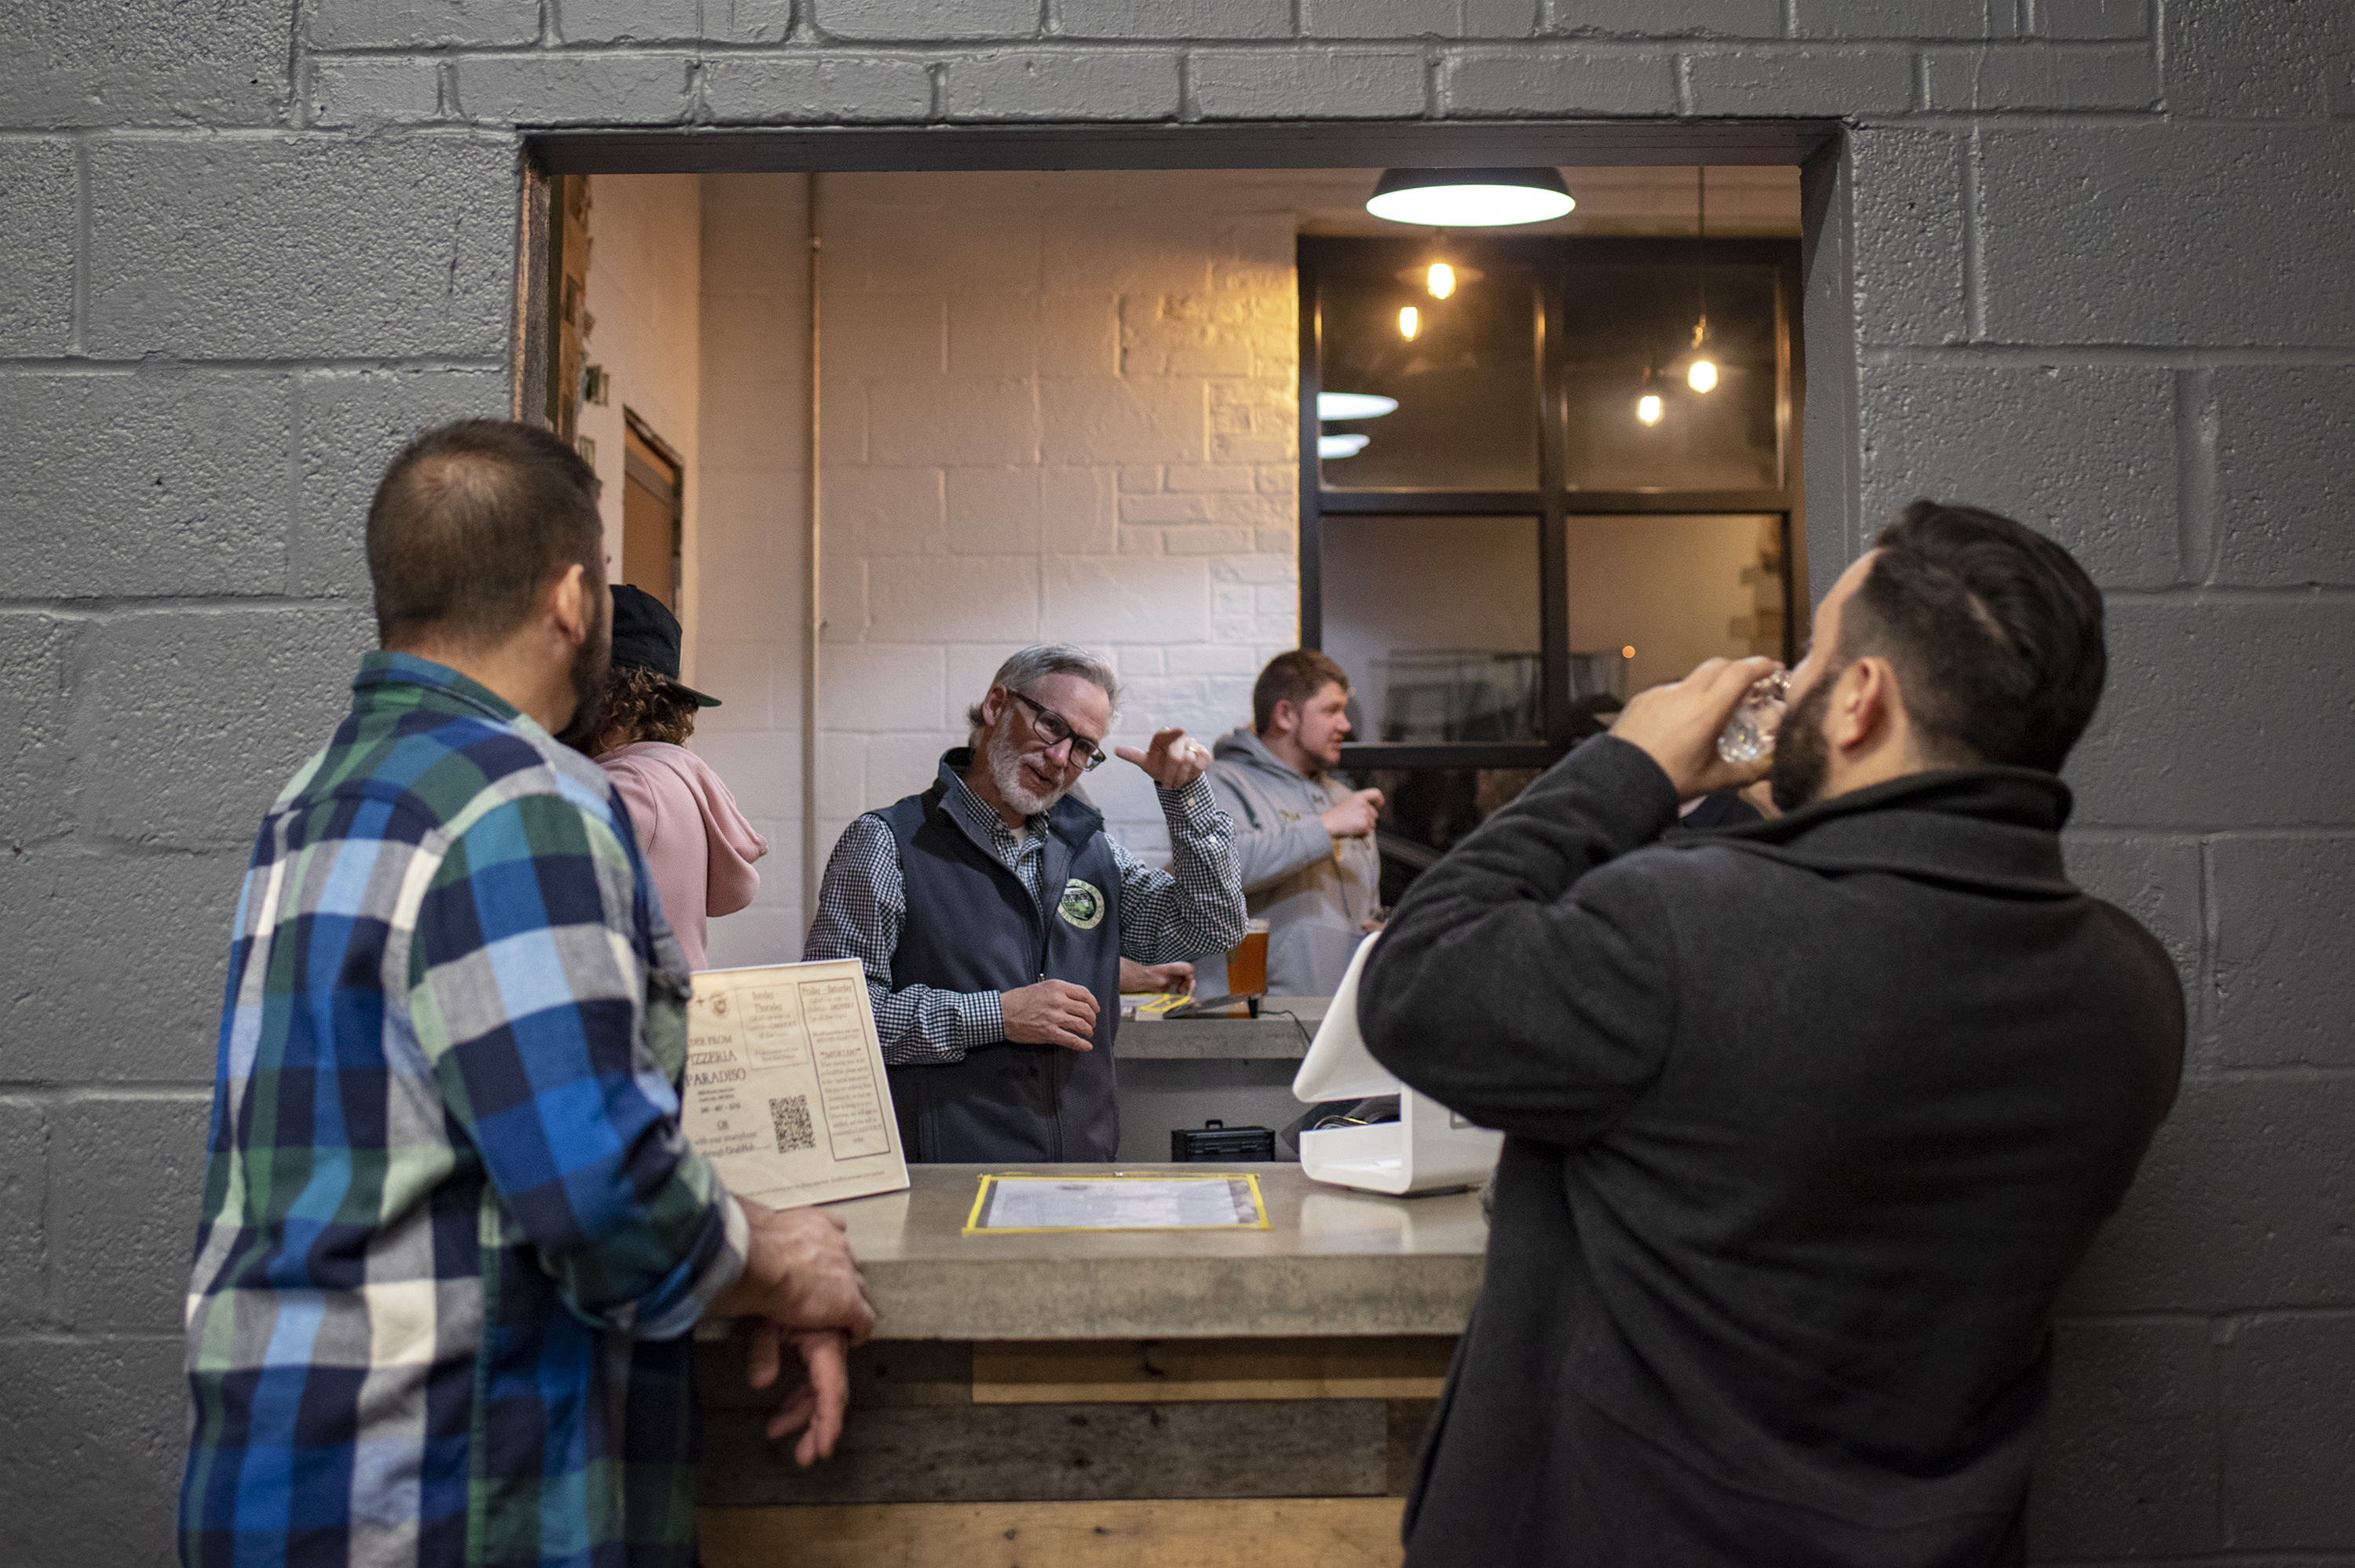 Co-founder Mark Burke signs with patrons at Streetcar 82 Brewing Co. in Hyattsville, Md. The brewery caters to deaf and hearing people.